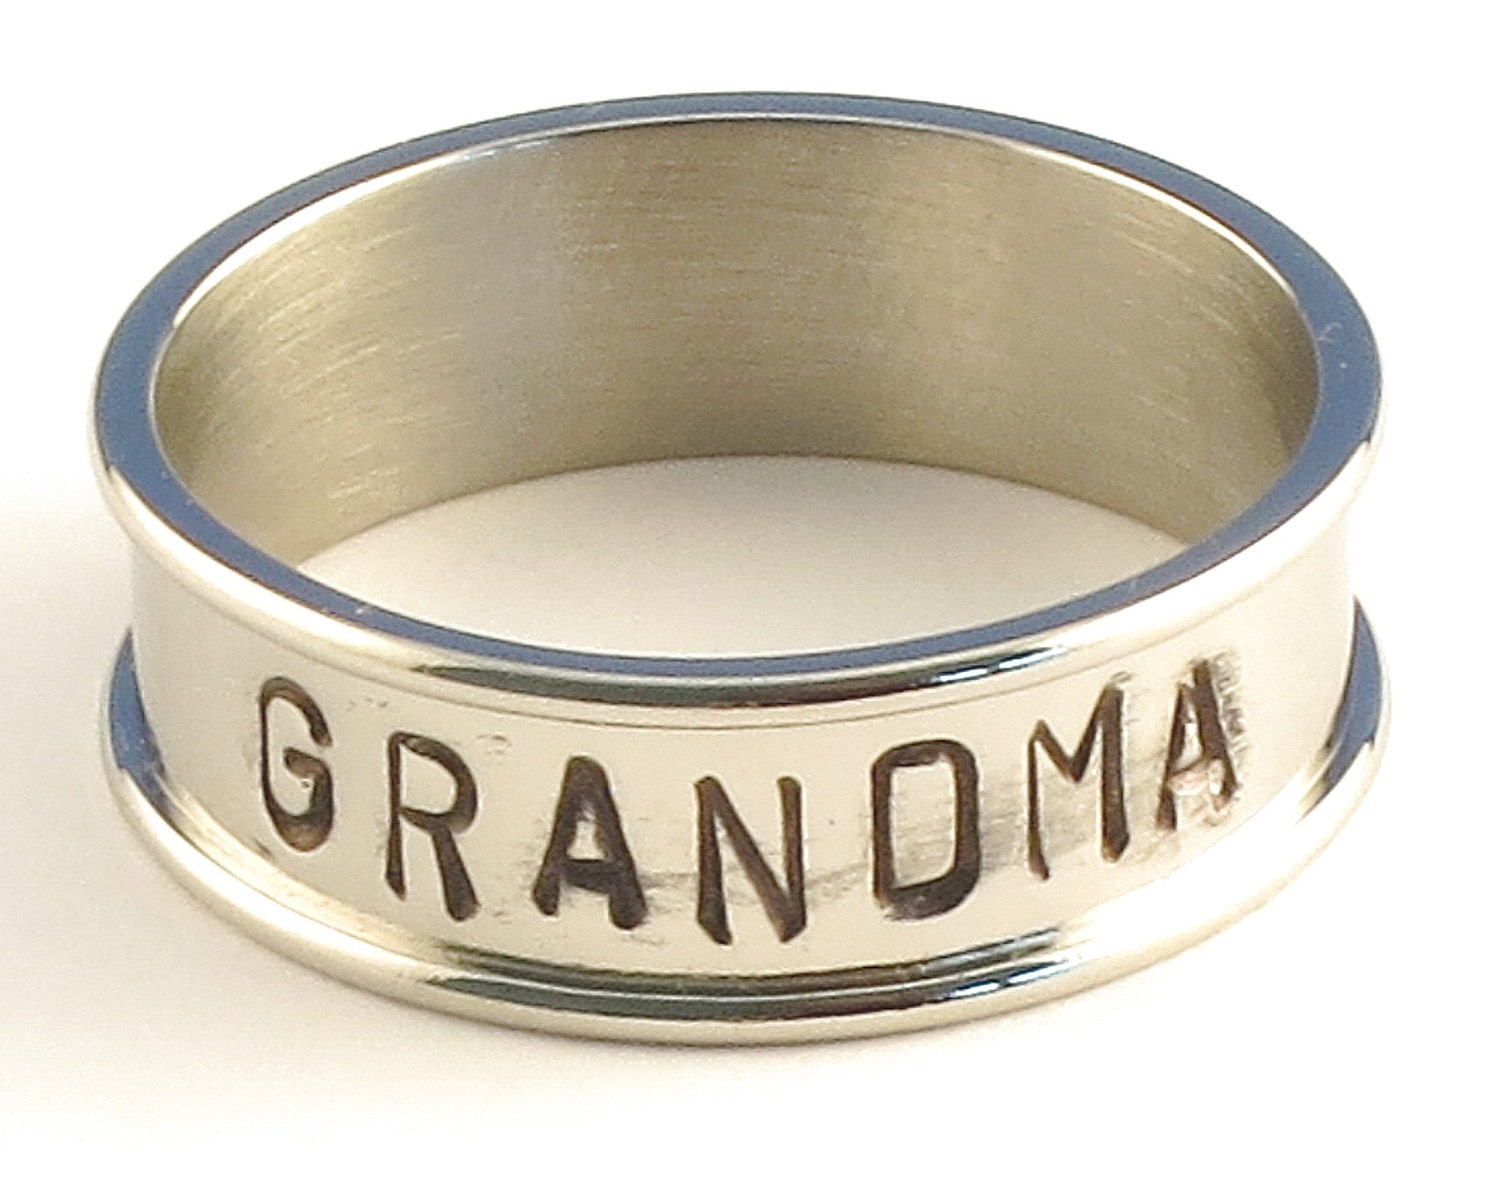 GRANDMA - Personalized Hand Stamped Customized Stainless Steel Channel Band Name Ring 7mm - Available in Ring Sizes 3-14